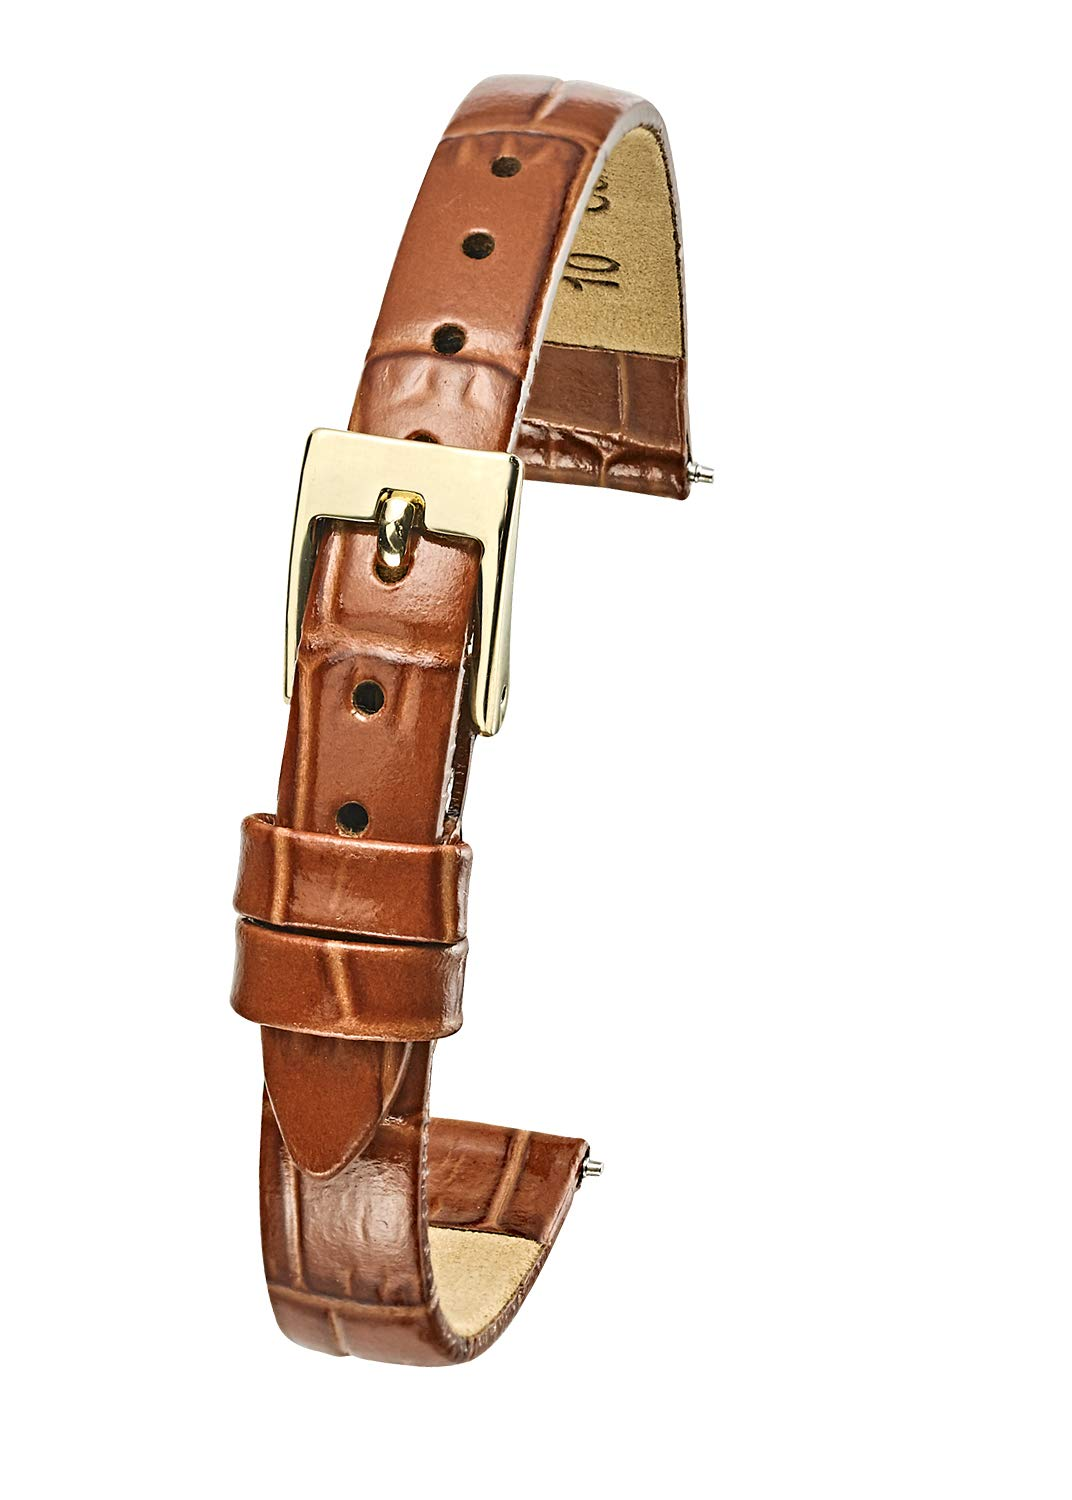 Genuine Leather Watch Band Strap in Shiny Alligator Grain Finish - 8mm - Brown